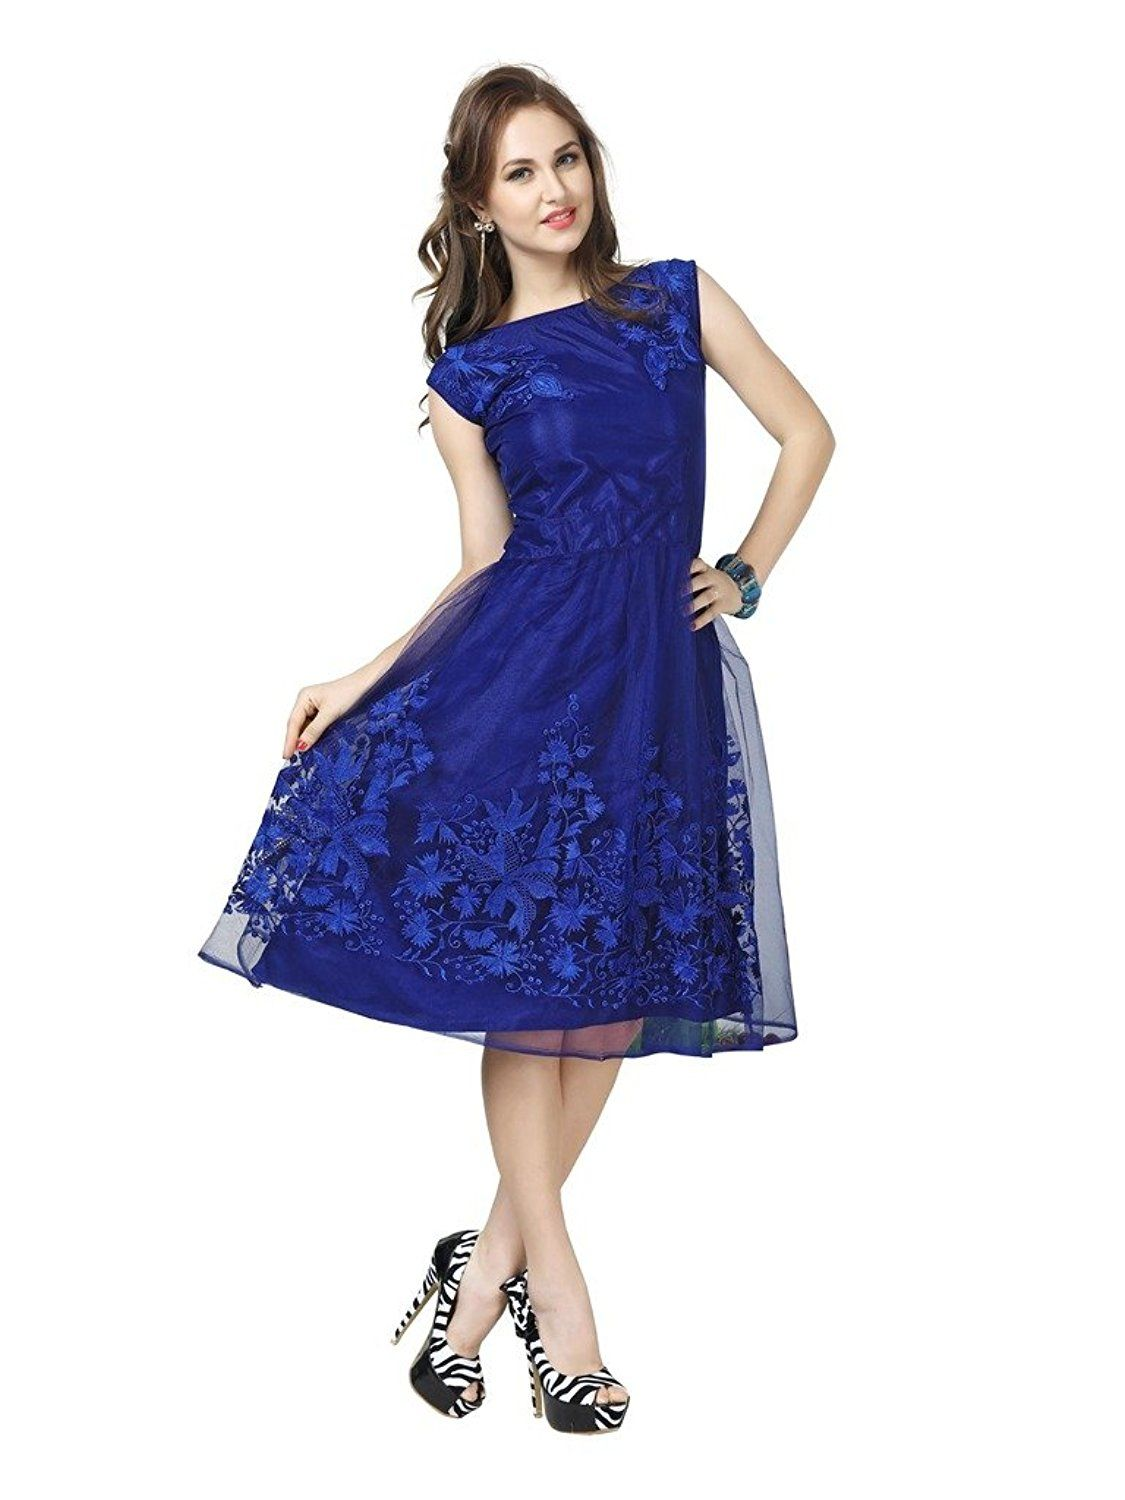 e53d60fa1e54 Elevate Women s Blue Net Embroidered A-Line Dress Blue Colour Fabric  - net  Length -Midi Knee Length Round Neck And Sleeveless Wash Care   hand wash  And dry ...